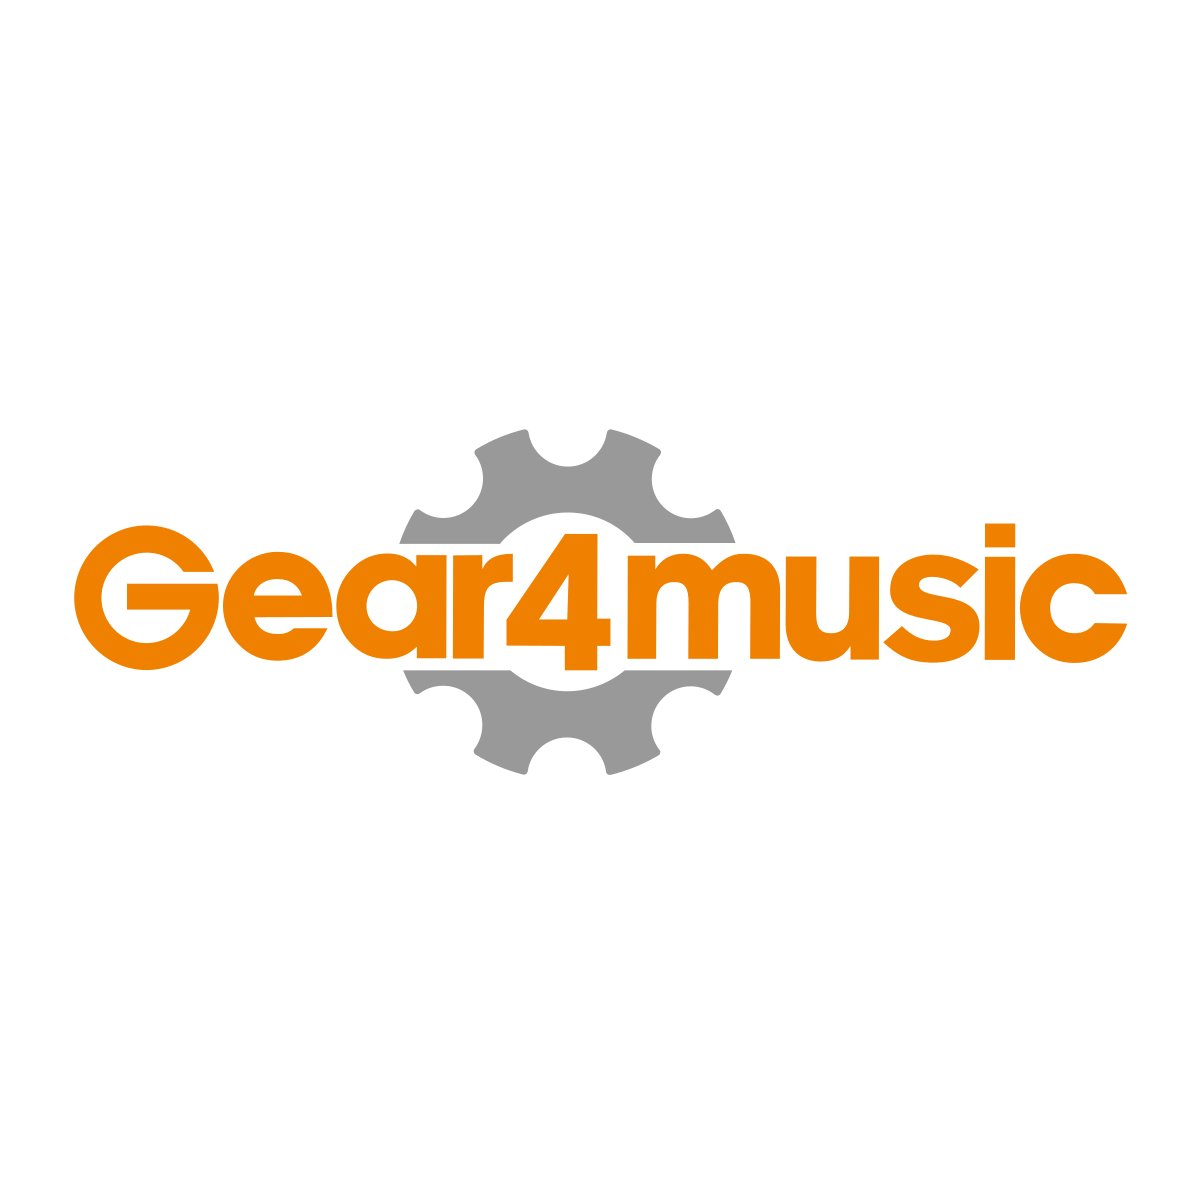 Mellofono Gear4music